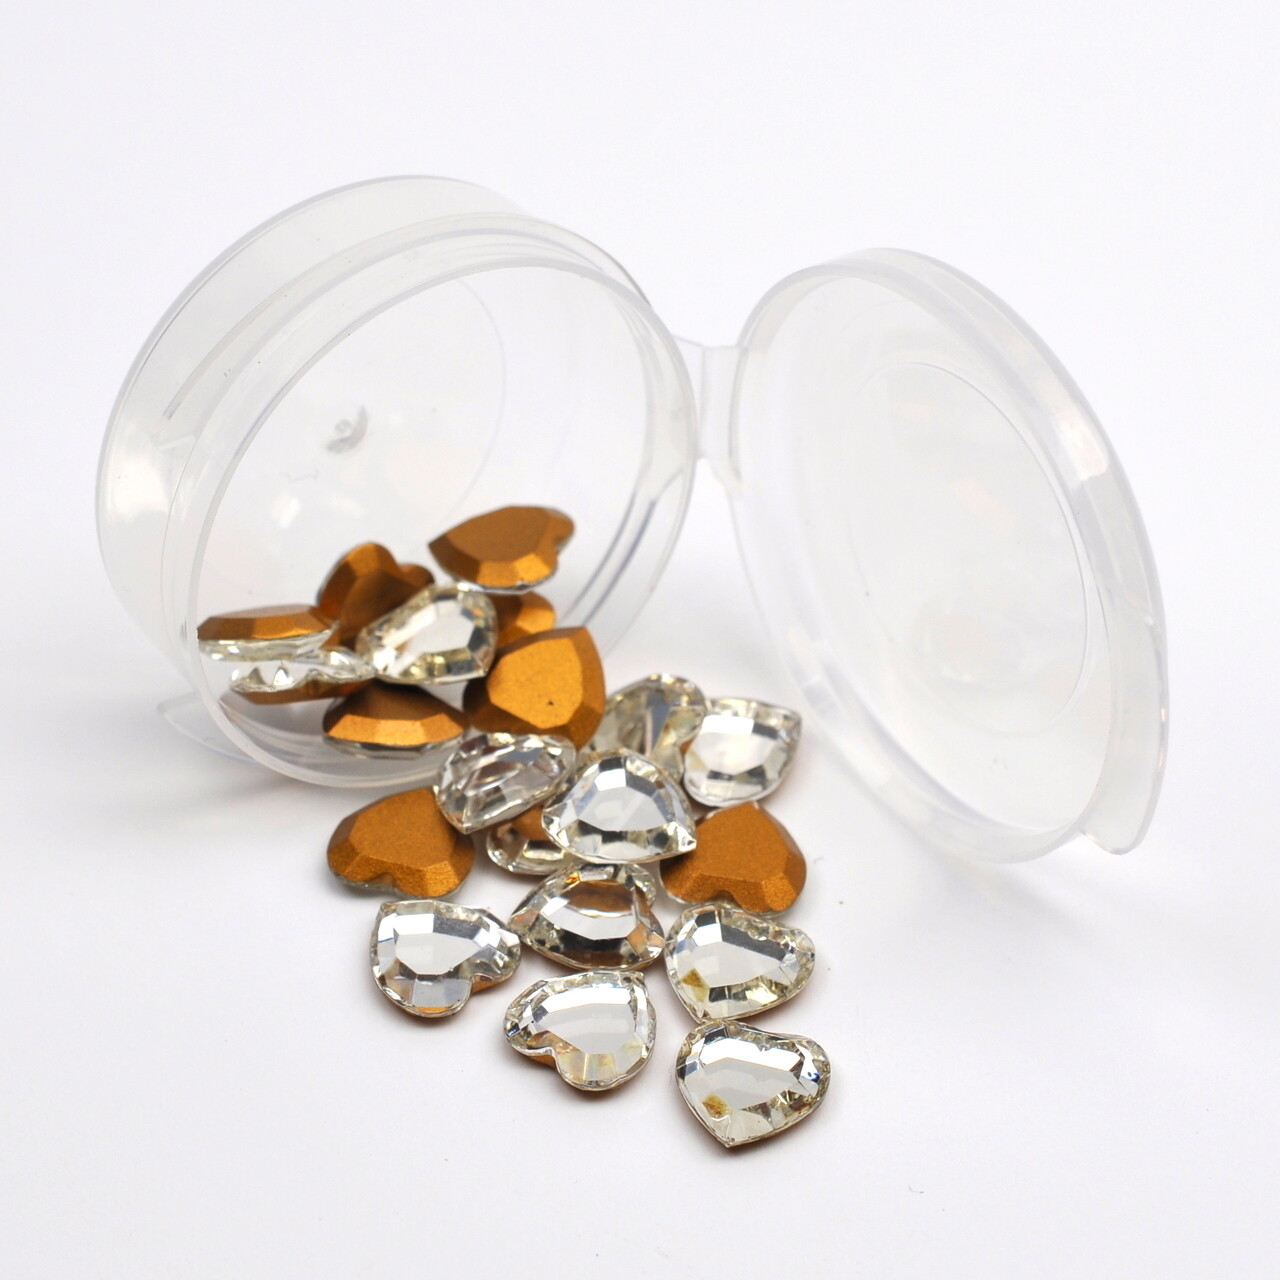 #4816/2 Crystal Heart 10mm (25 pcs) Gold Foiled